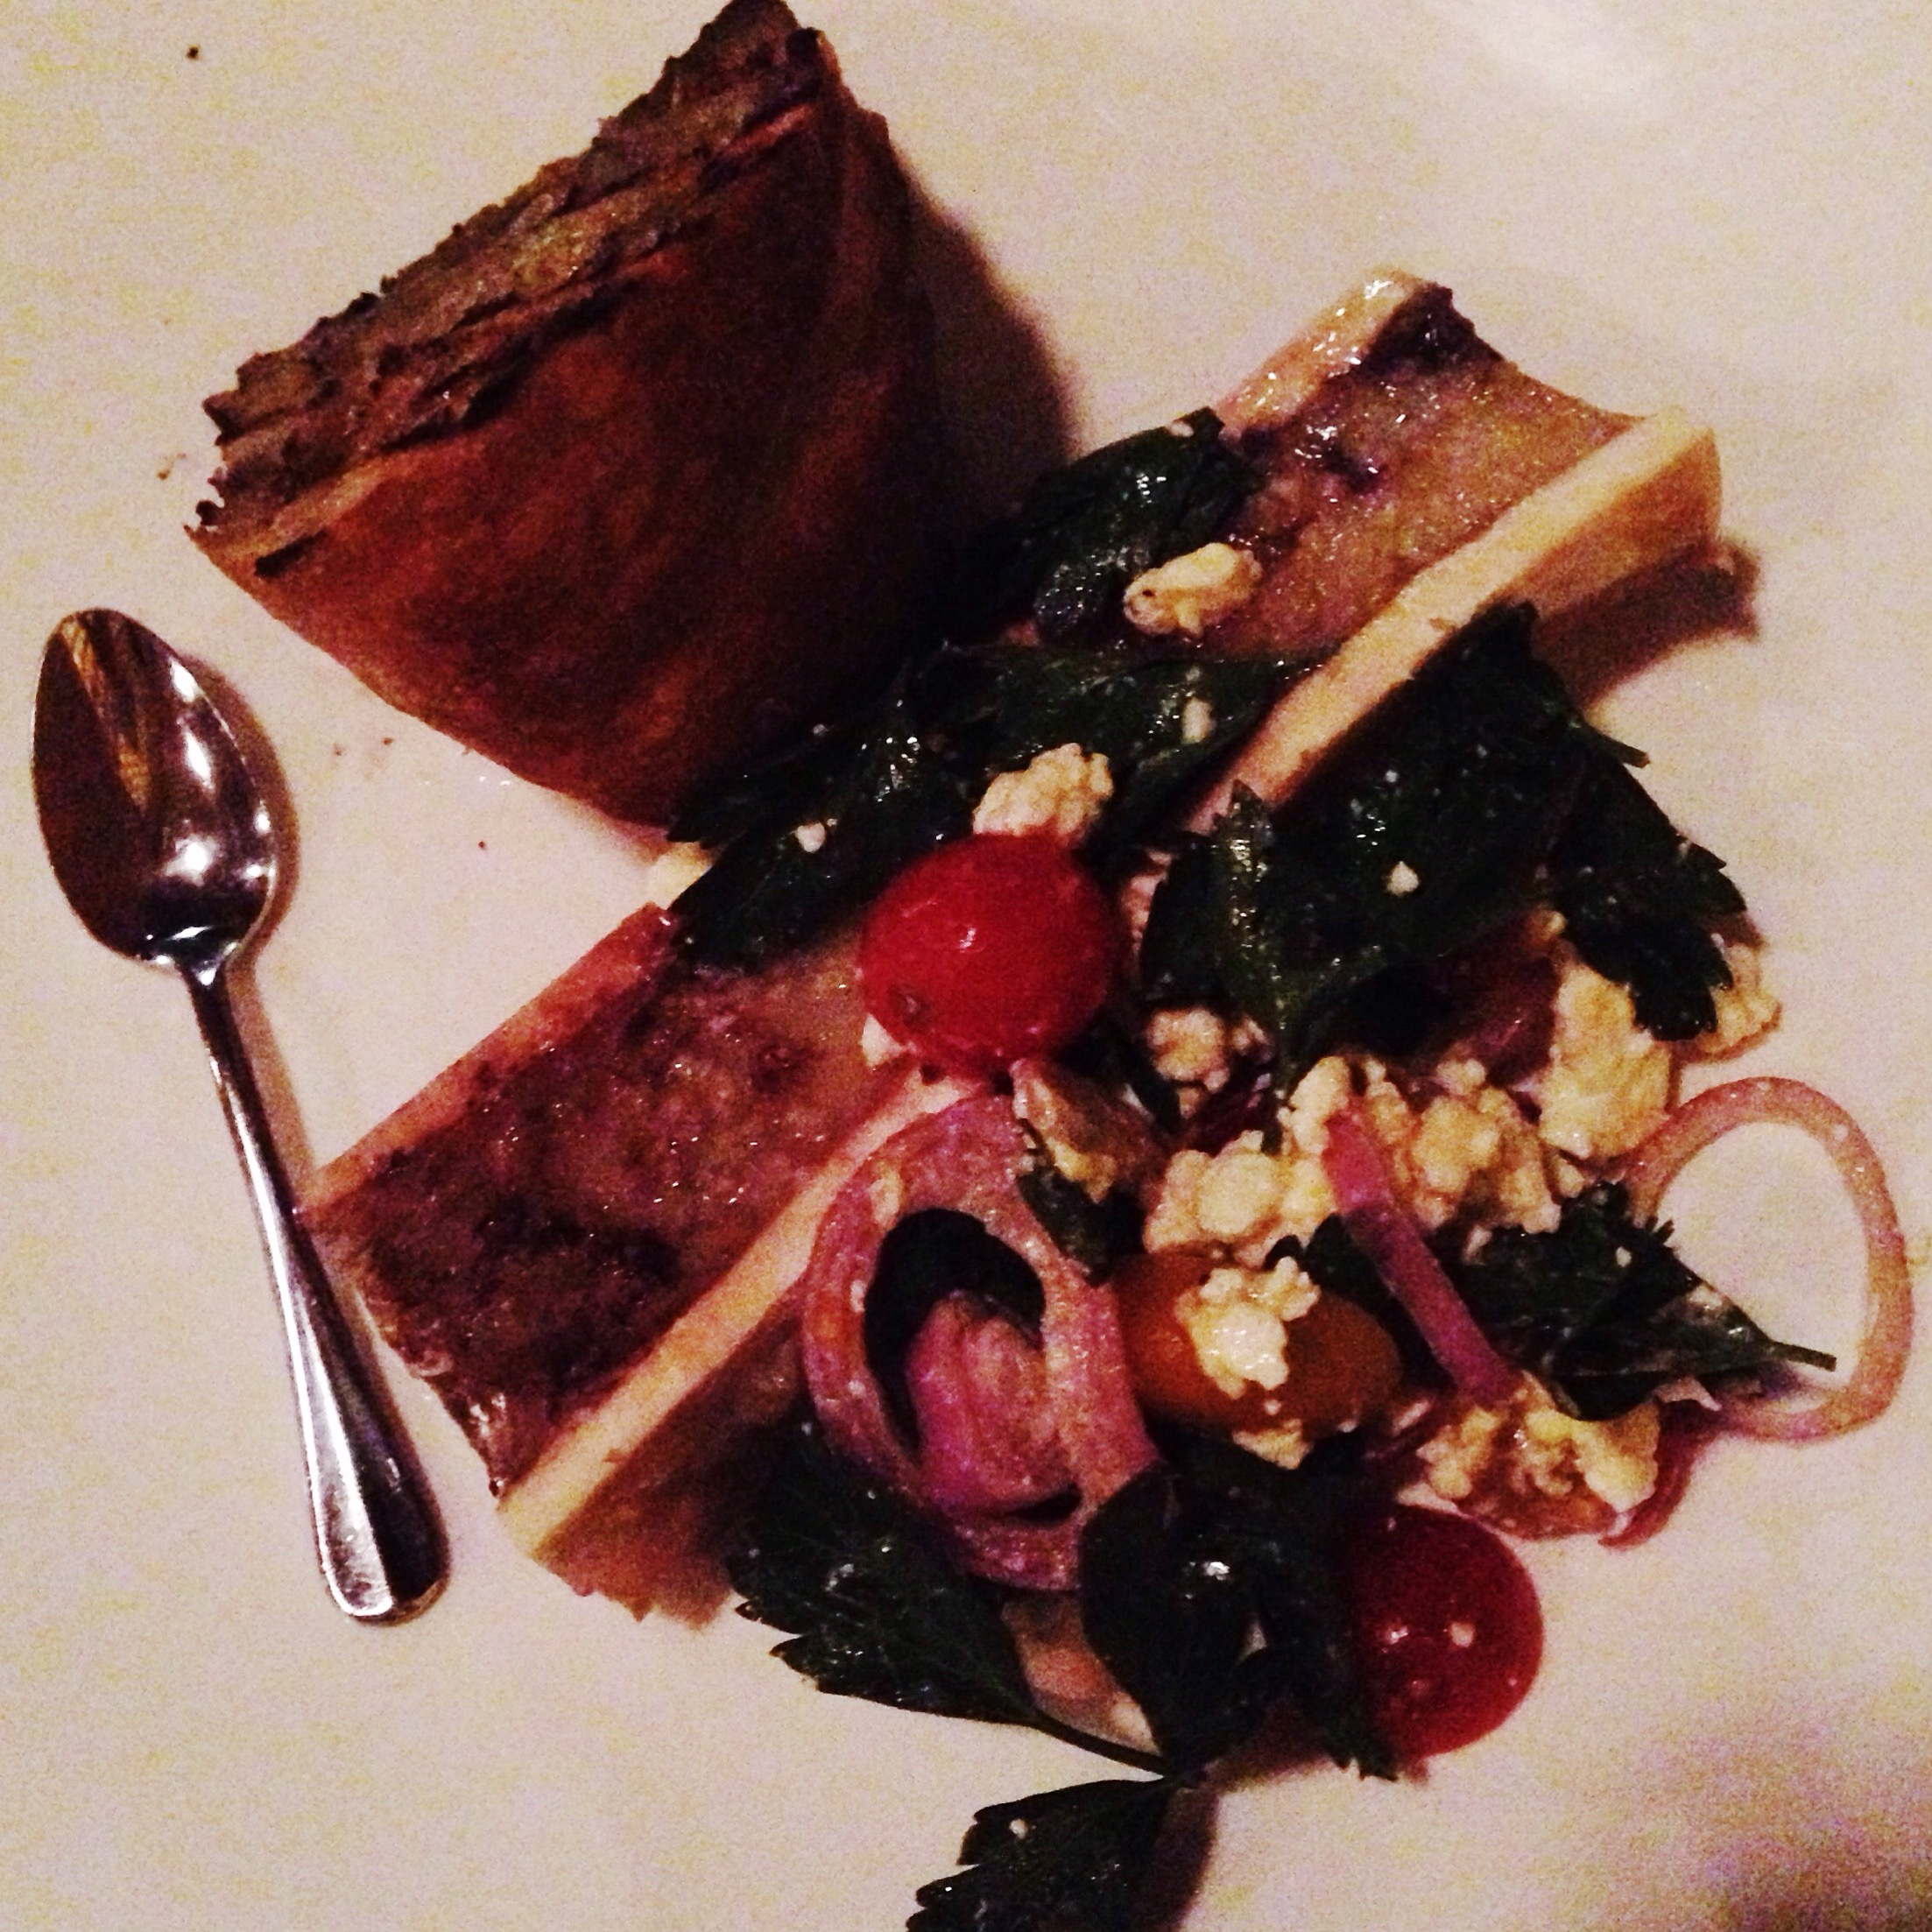 Bone marrow at Table